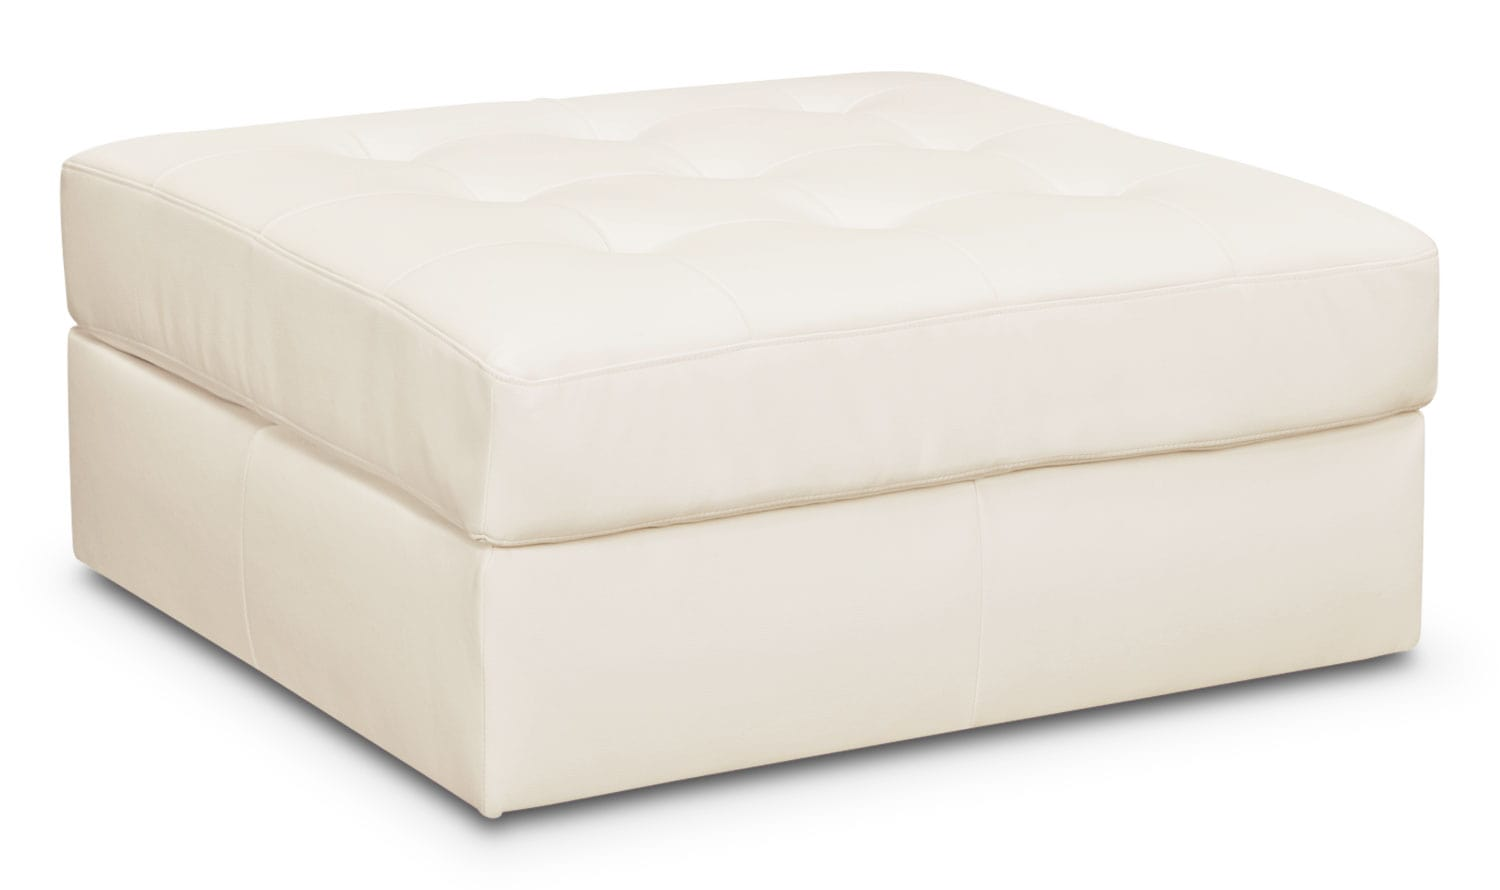 Living Room Furniture - Cayenne Ottoman - White